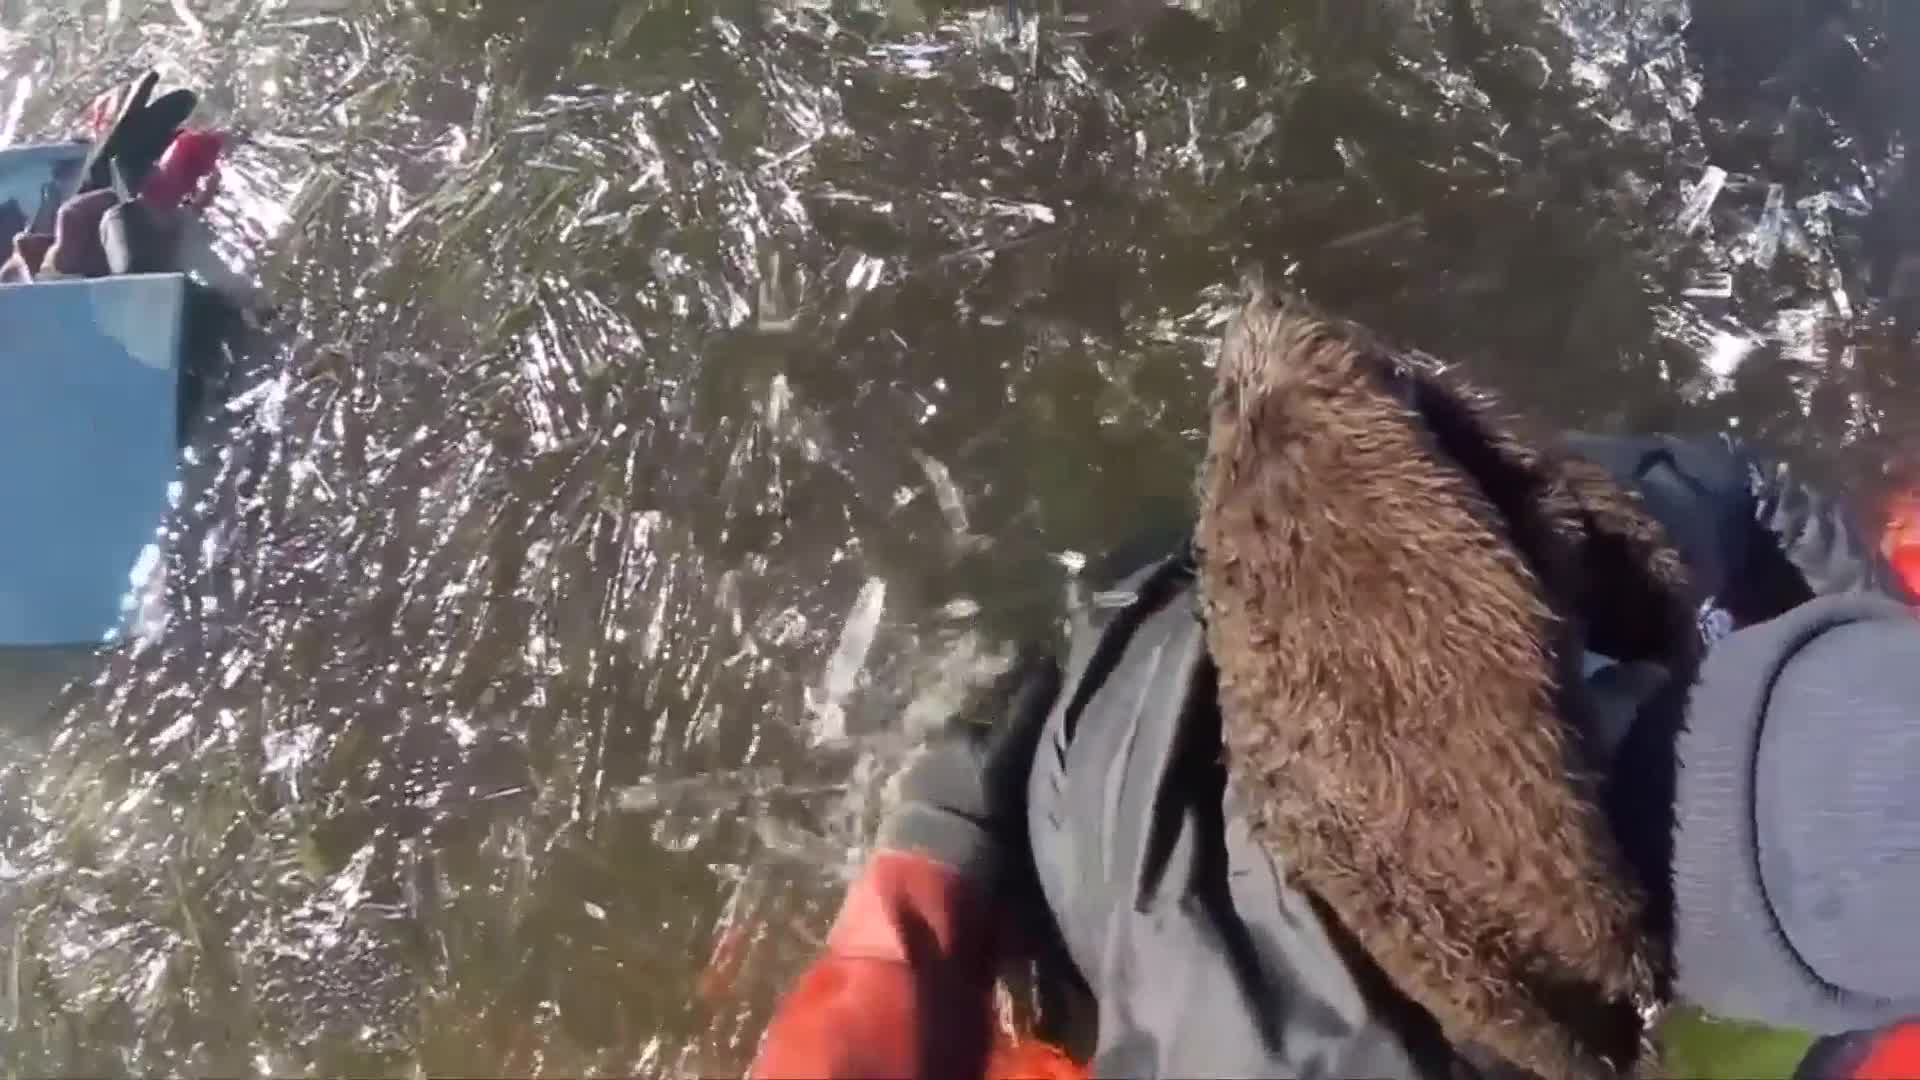 Estonia's emergency services rescue a fisherman trapped in a frozen lake